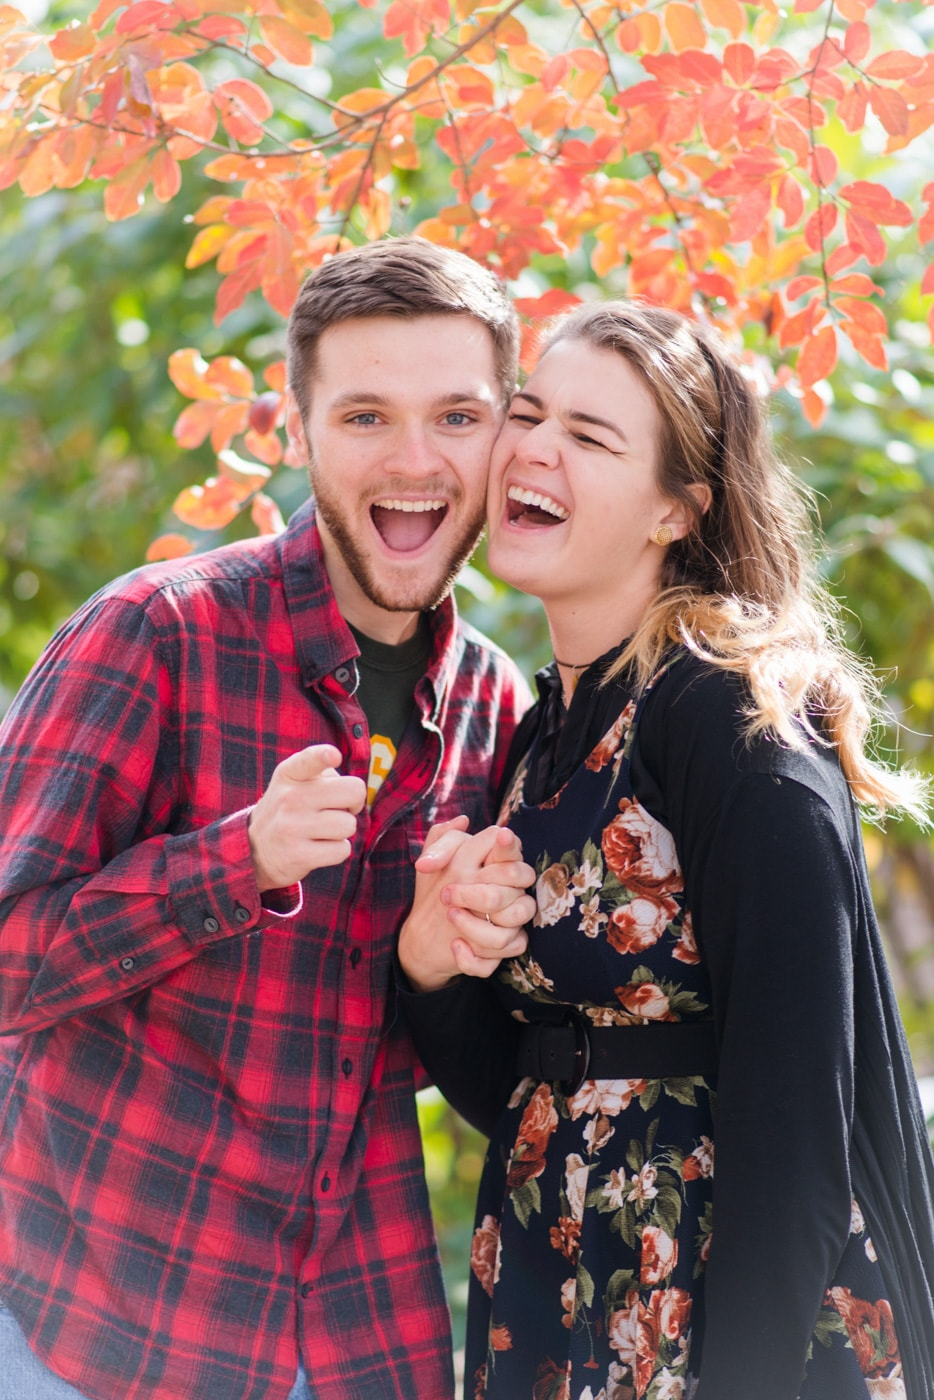 A young couple makes goofy faces at the camera in old town alexandria